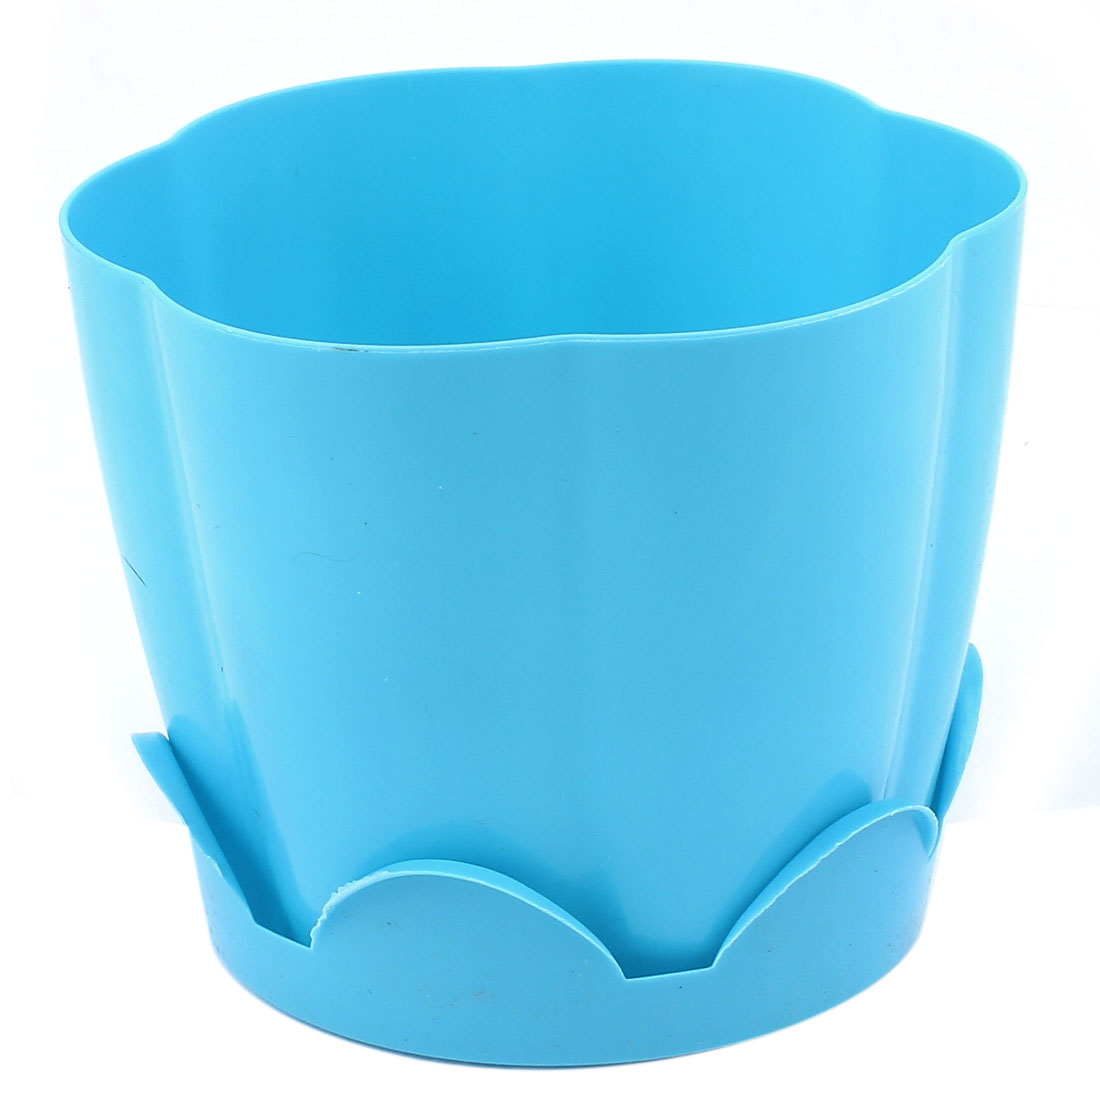 Blue Petal Shape Resin Plant Flower Pot Planter Flowerpot Decor 13 x 10.5cm